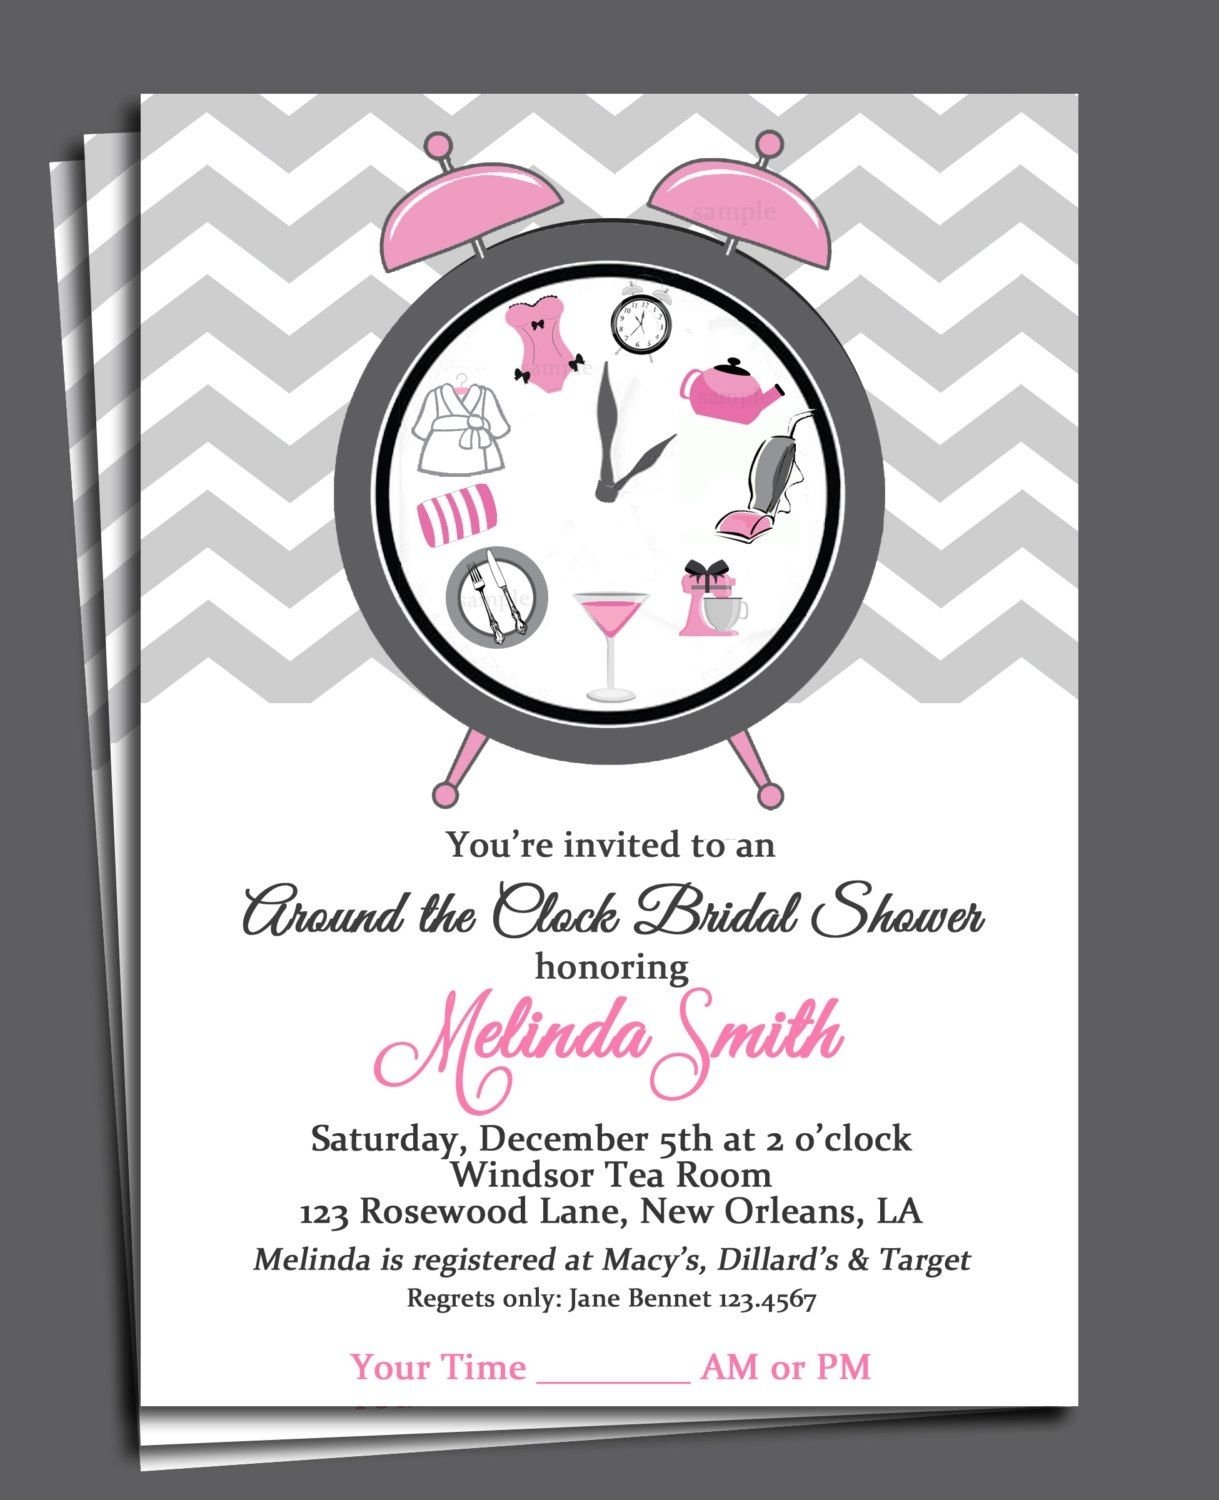 10 Cute Around The Clock Bridal Shower Ideas around the clock bridal shower invitation printable or printed with 1 2020